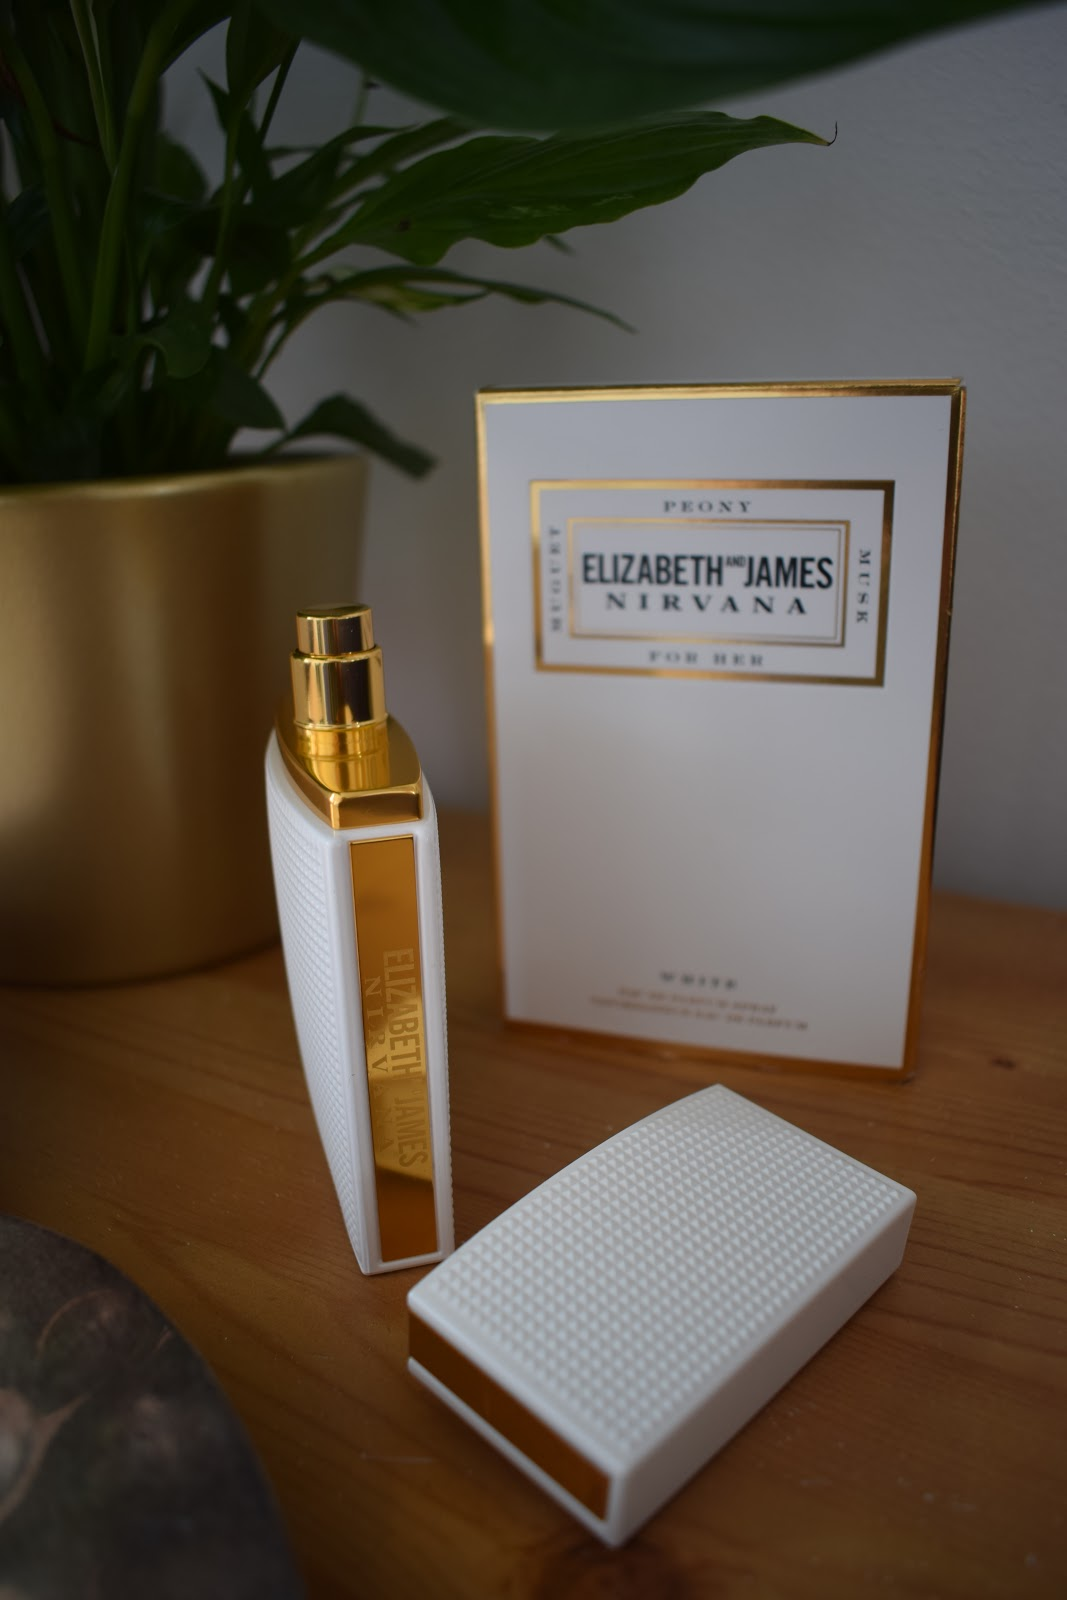 Elizabeth and James Nirvana White Perfume Review